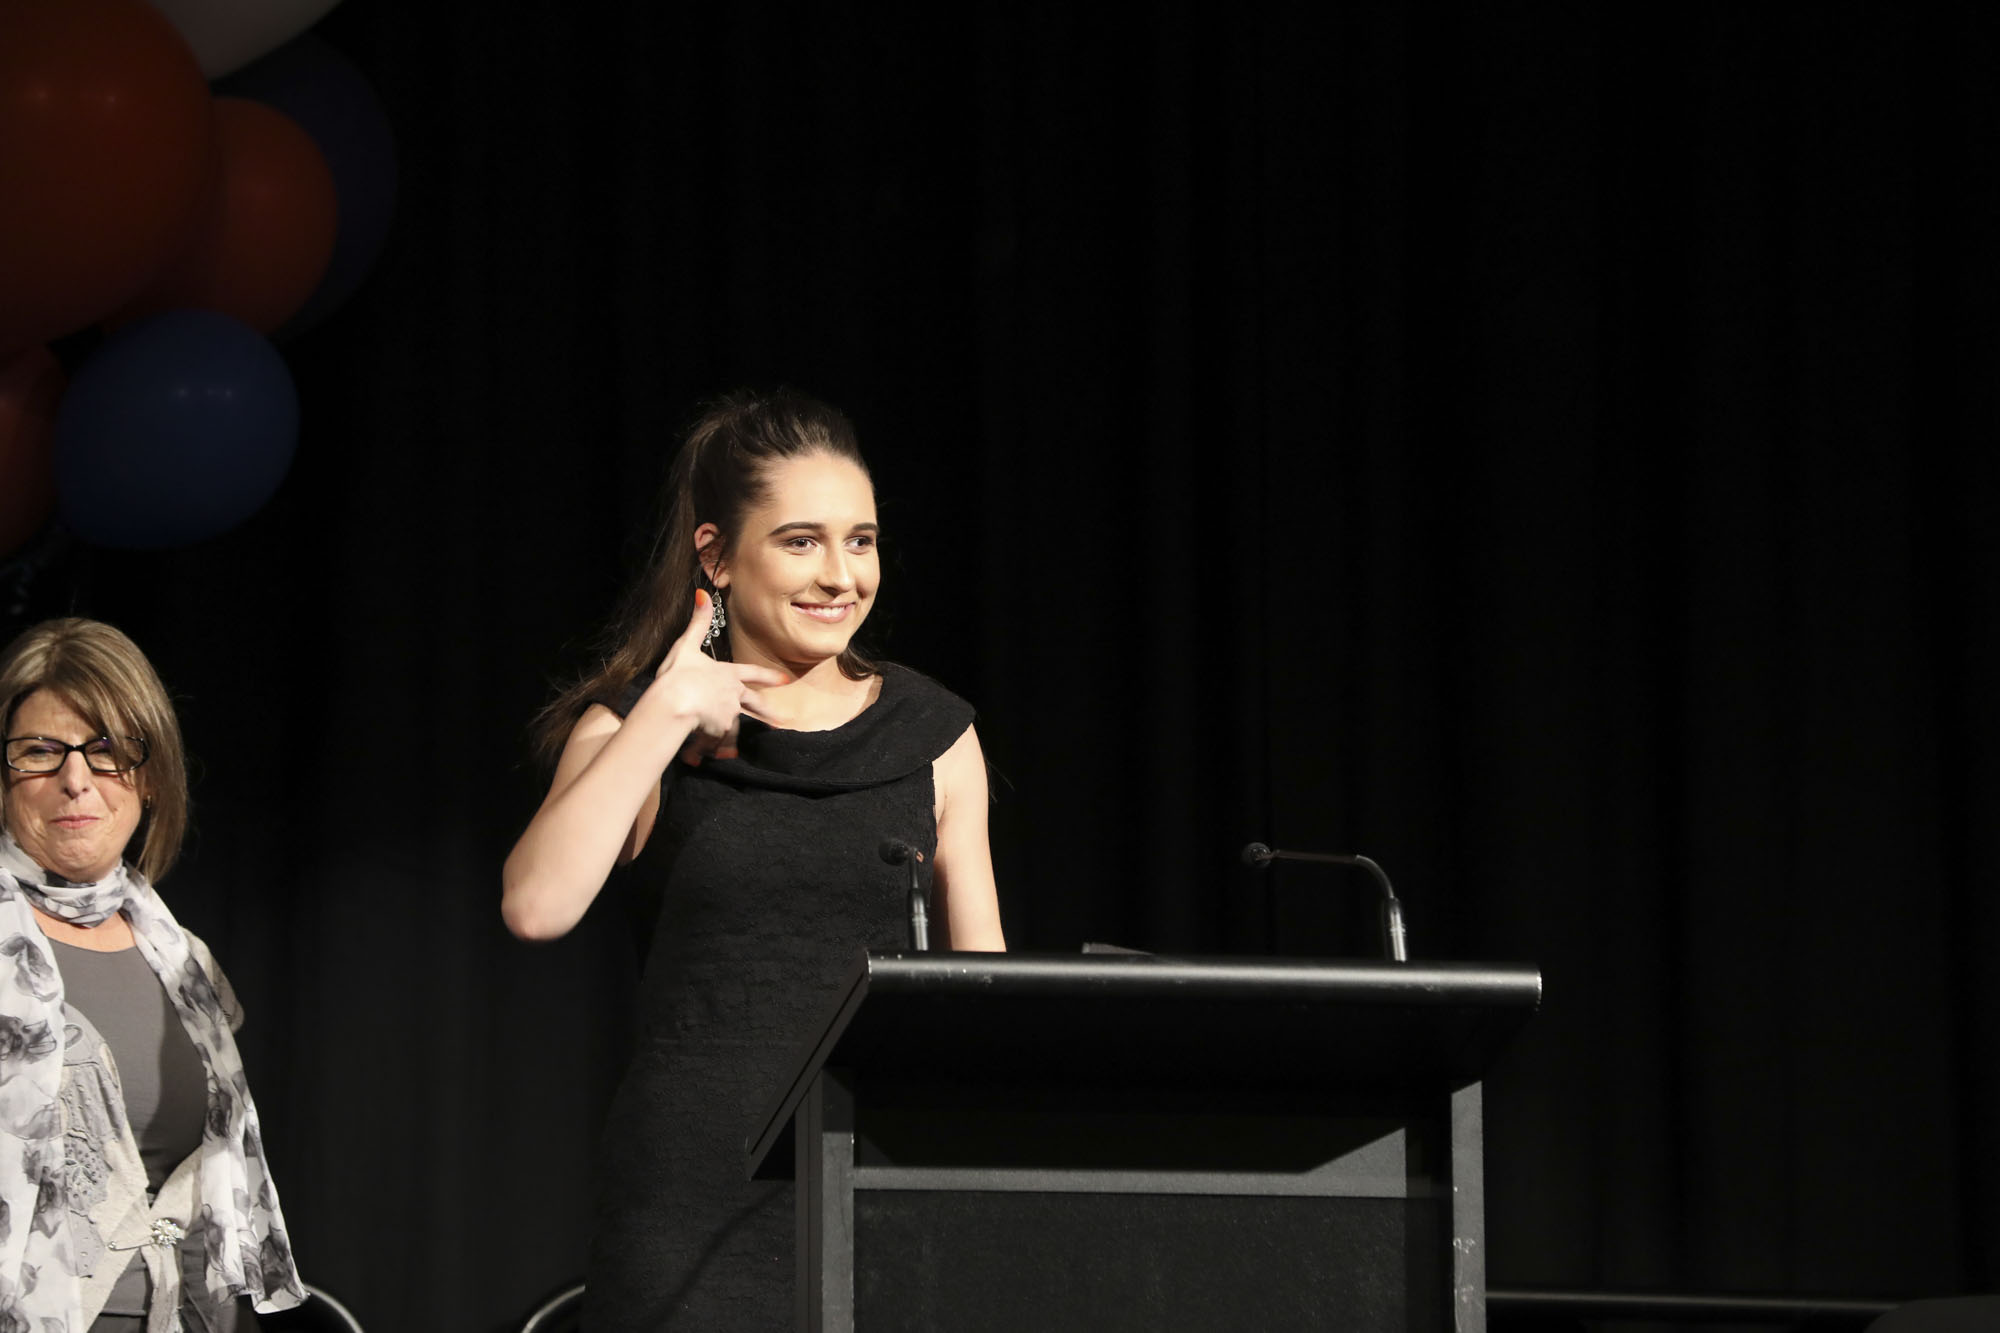 Vanessa Vlajkovic, formerly of Mount Lawley Senior High School, is a 20 year old university student living with DeafBlindness. Vanessa presented on the ups and the downs of her education experience, as well as her many achievements.